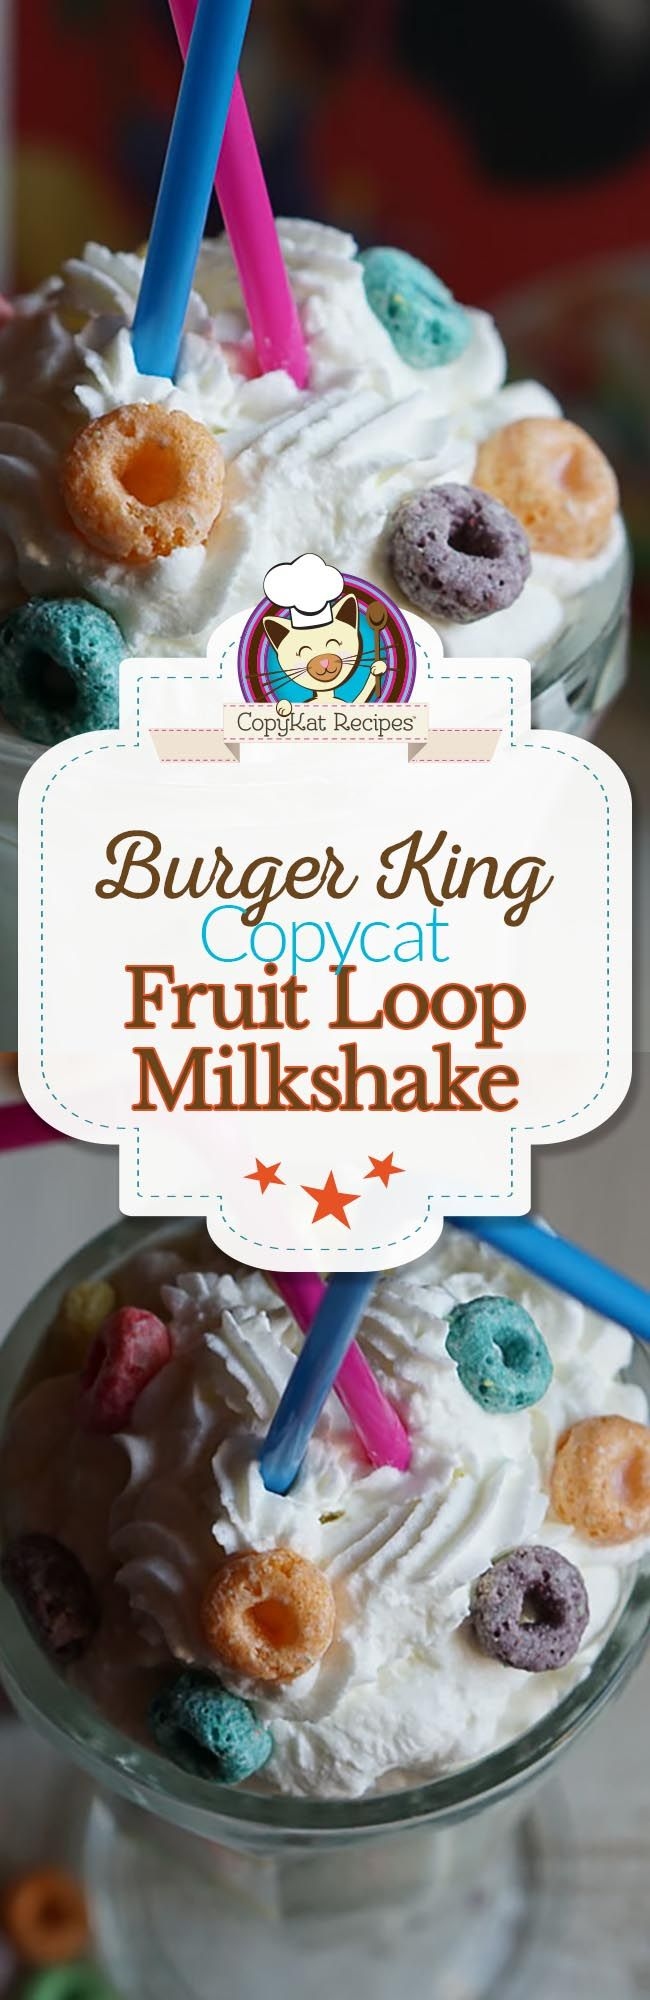 Make your own copycat Burger King Fruit Loop Milkshake at home with this easy copycat recipe.